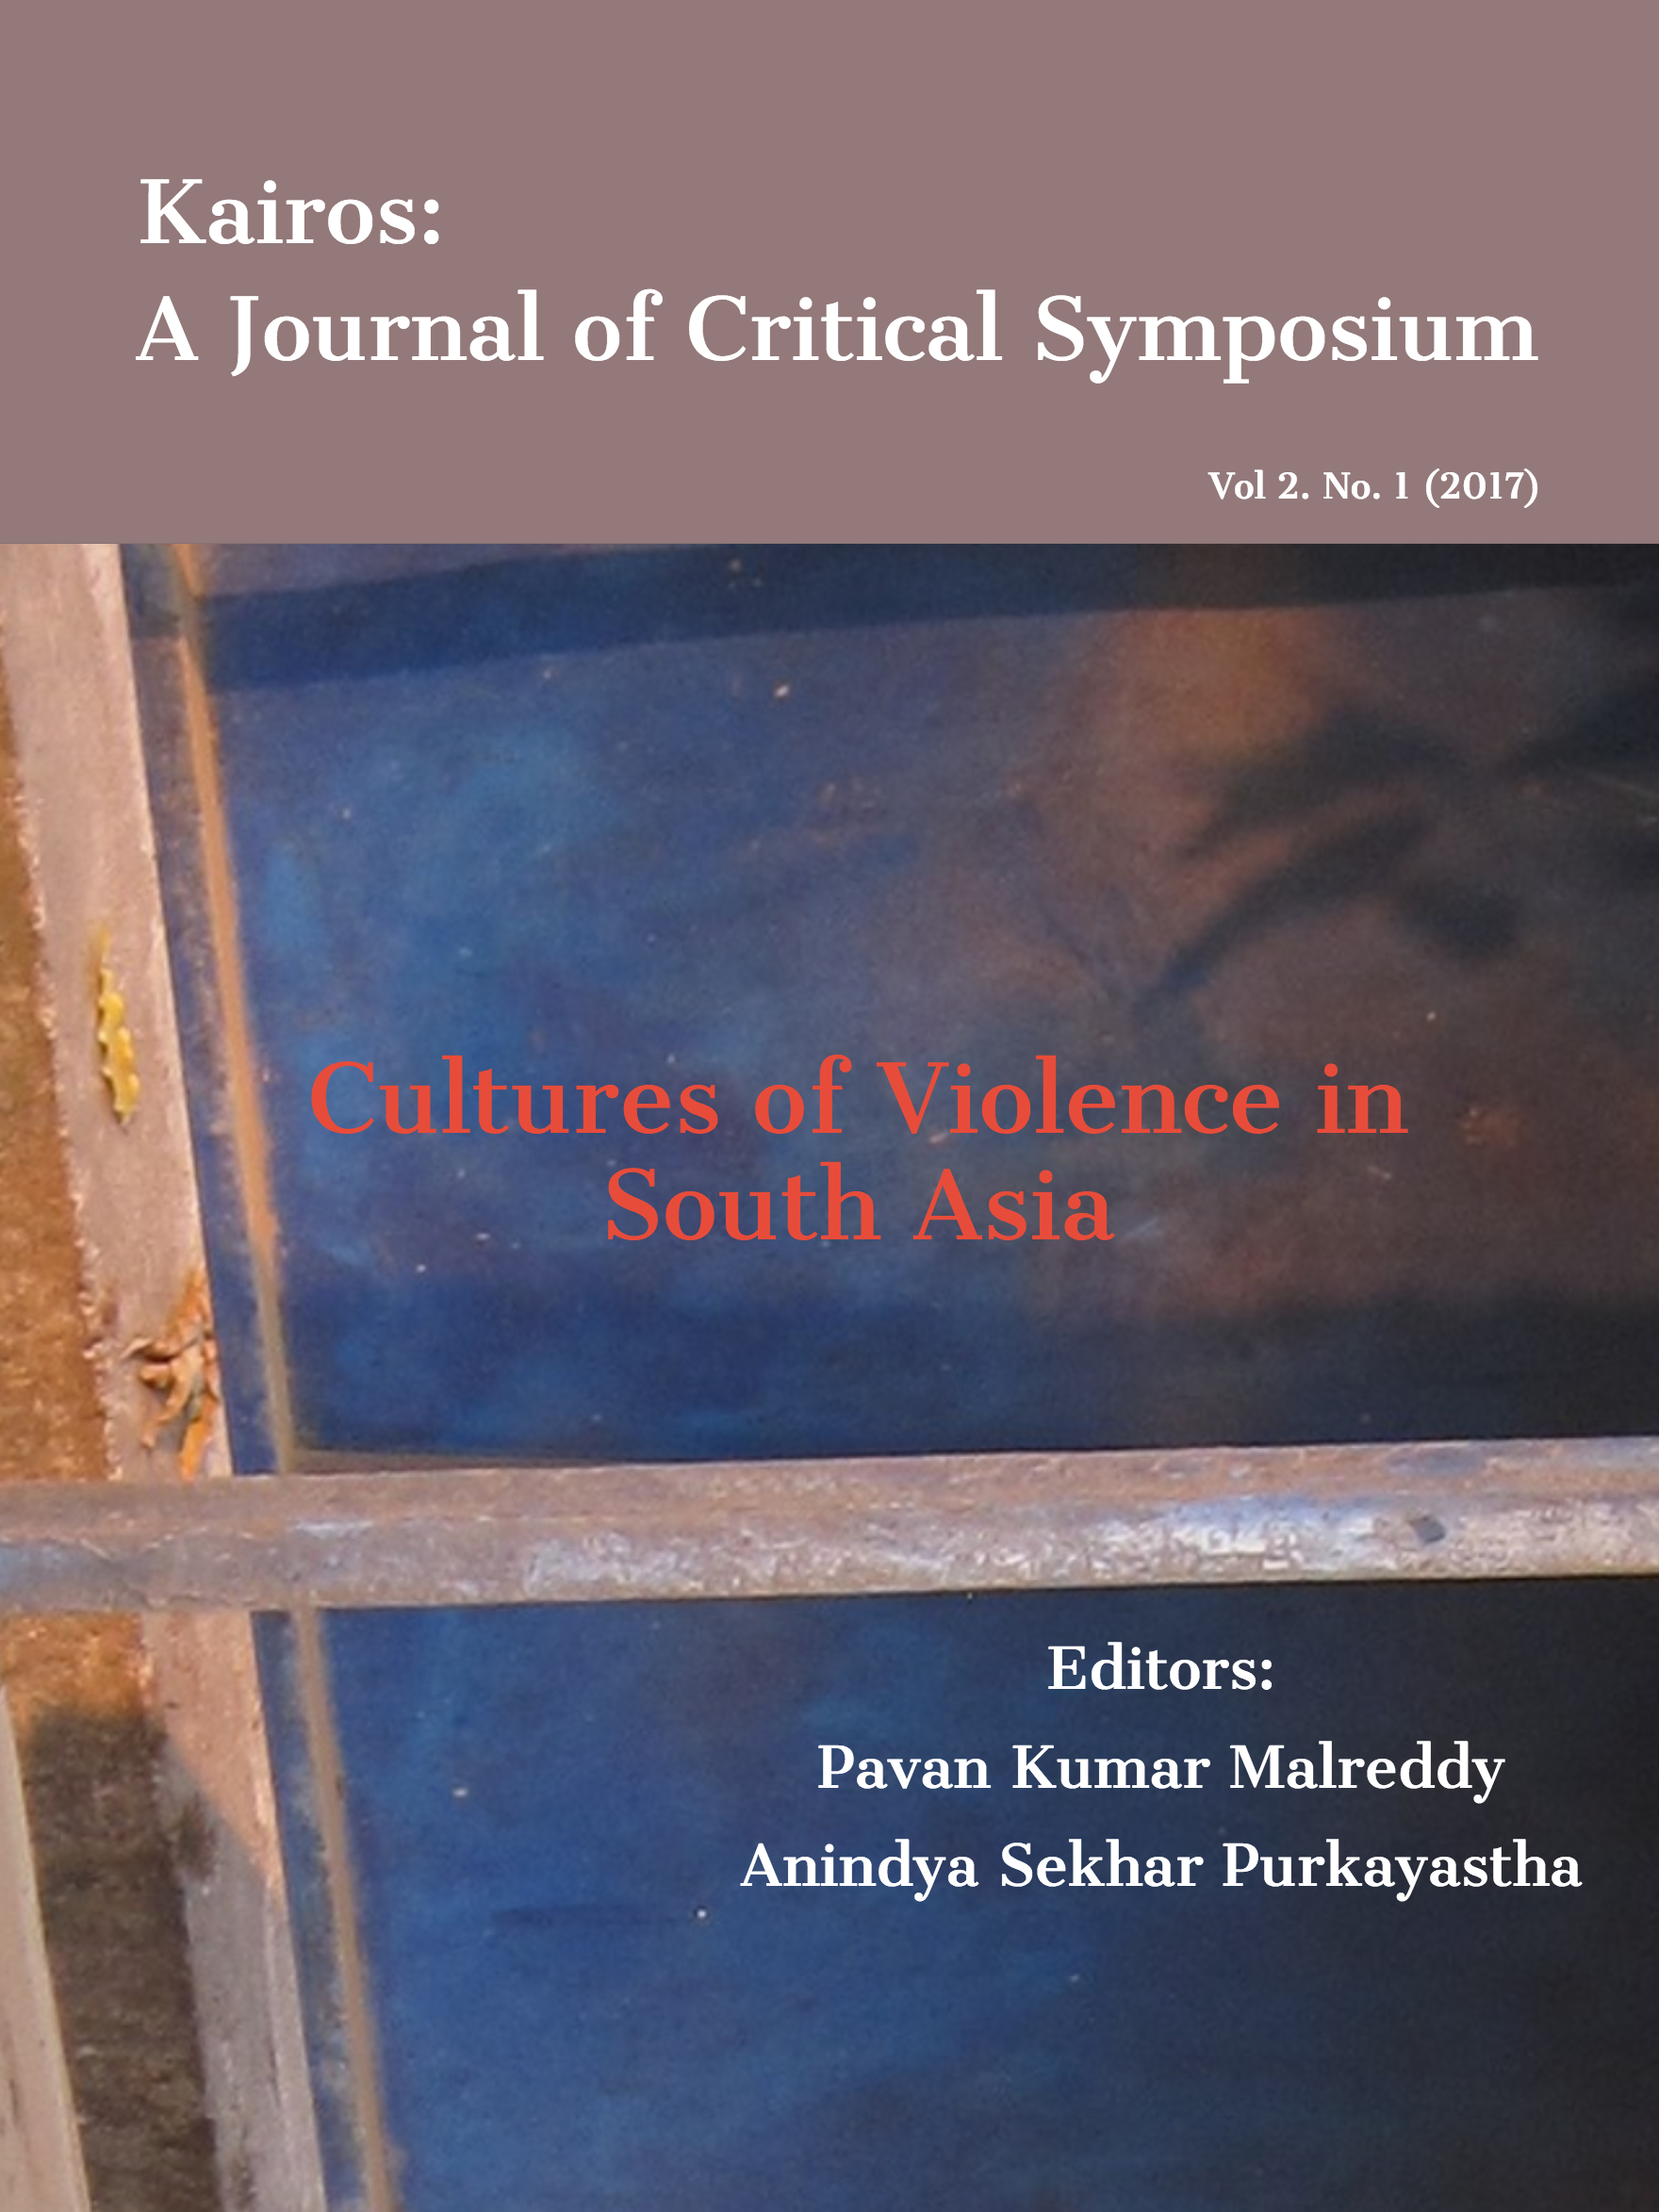 Cultures of Violence in South Asia. Kaiors, Special Issue Vol 2 No 1 (2017)